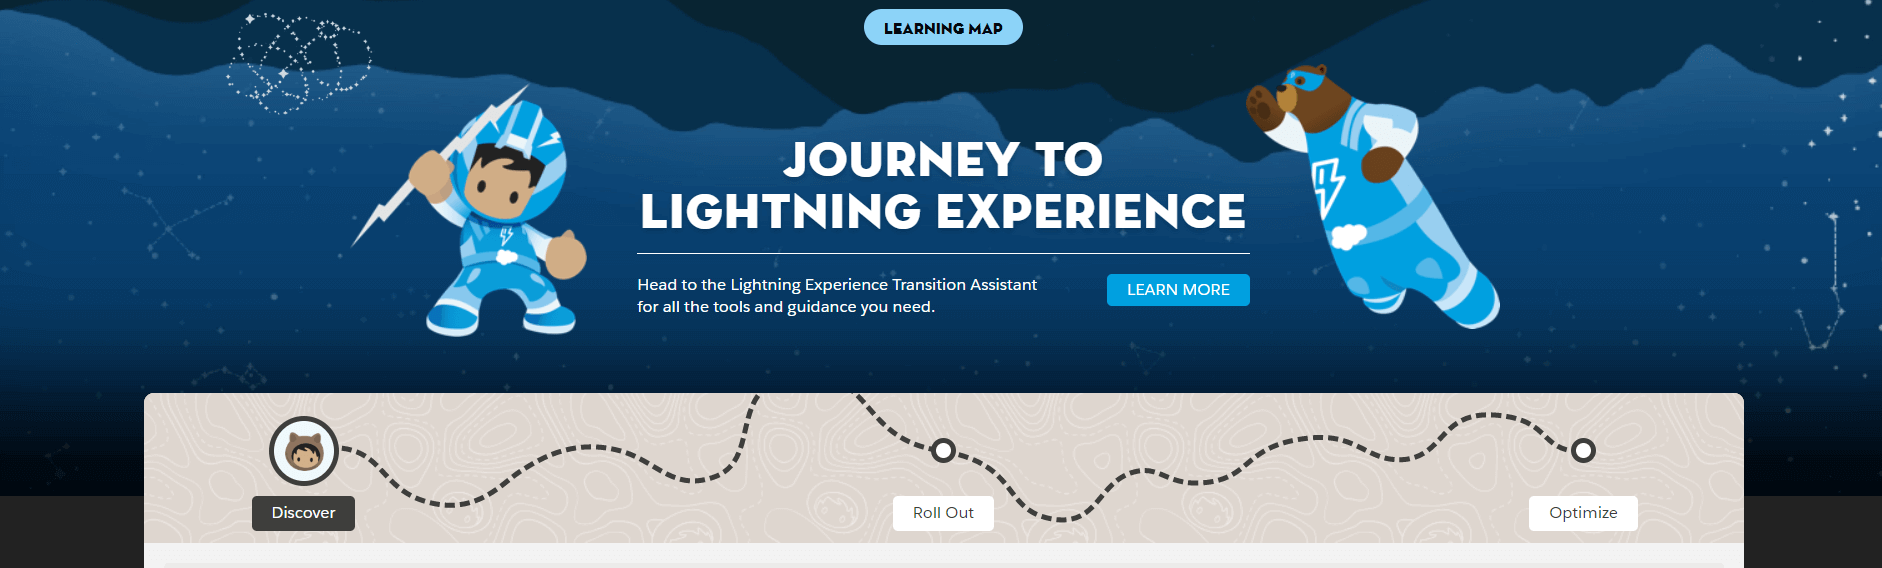 Salesforce Lighting Learning Map